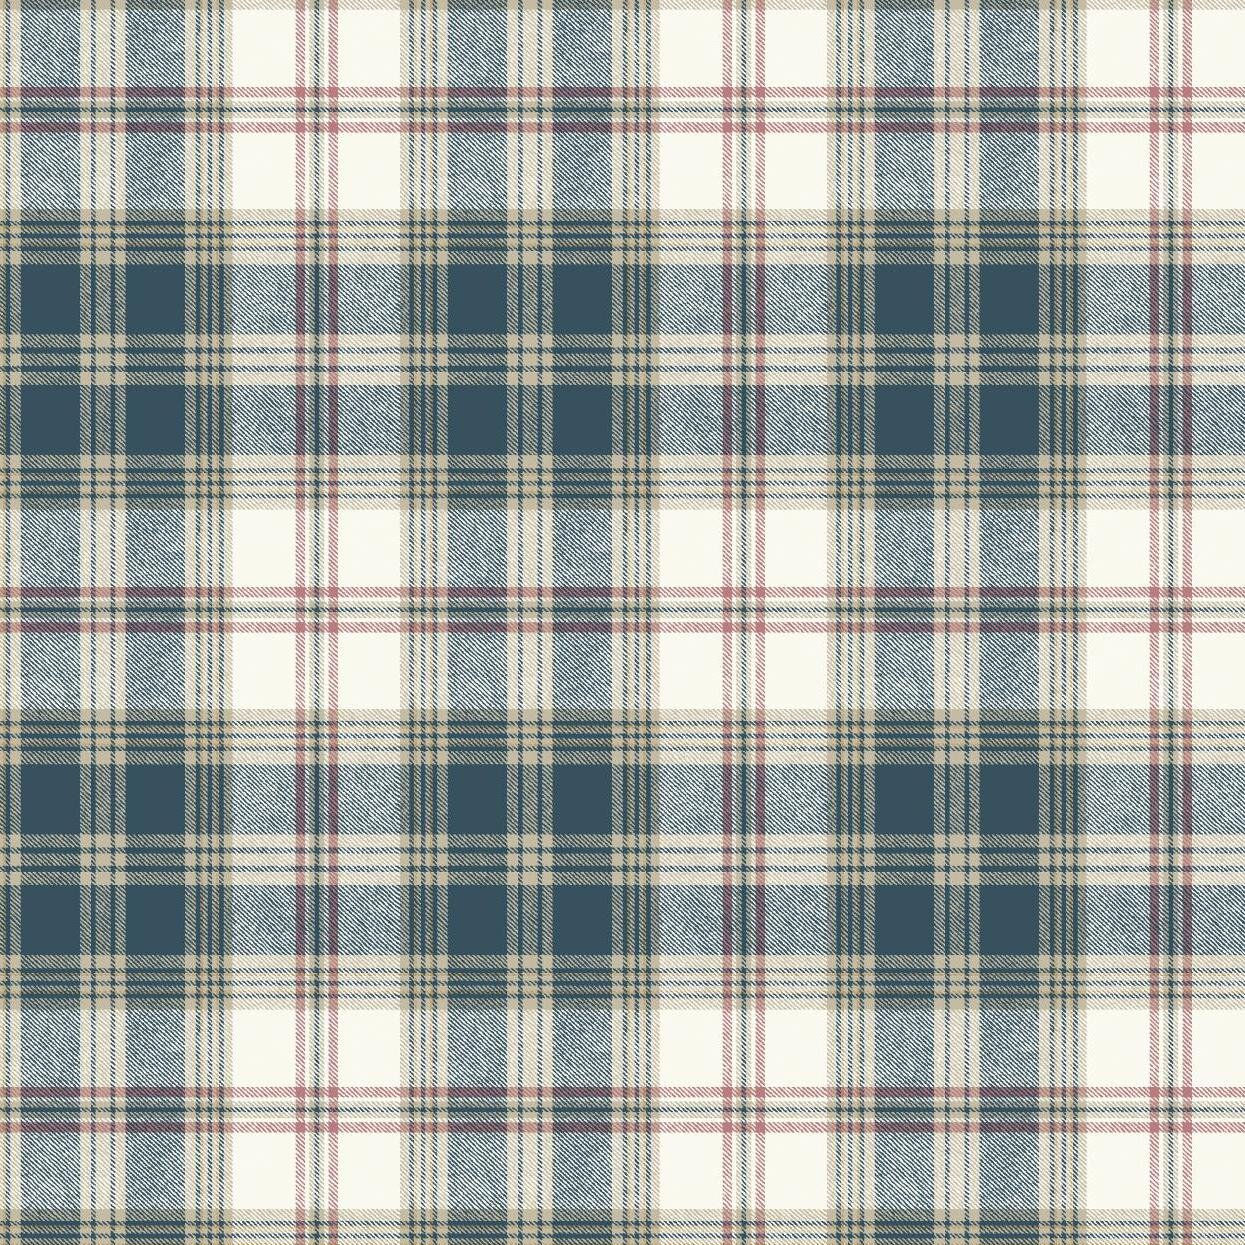 Removable Water-Activated Wallpaper Bold Geometric Abstract Tartan Red Black